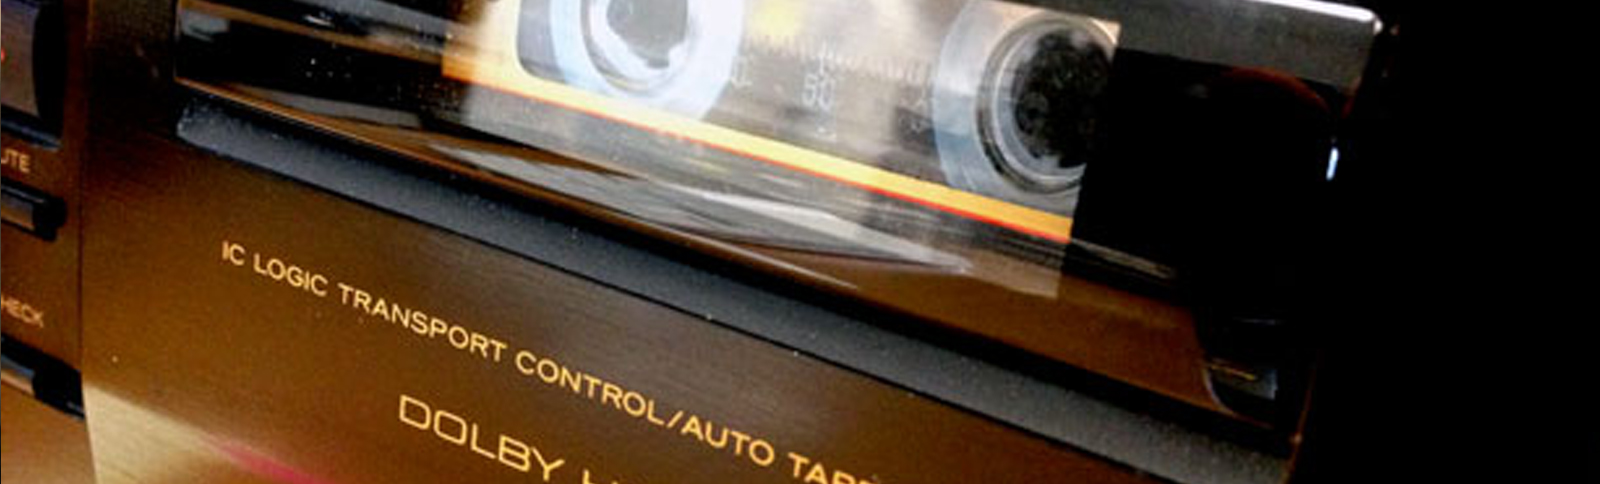 How to Convert Cassettes to MP3 & Other Digital Formats